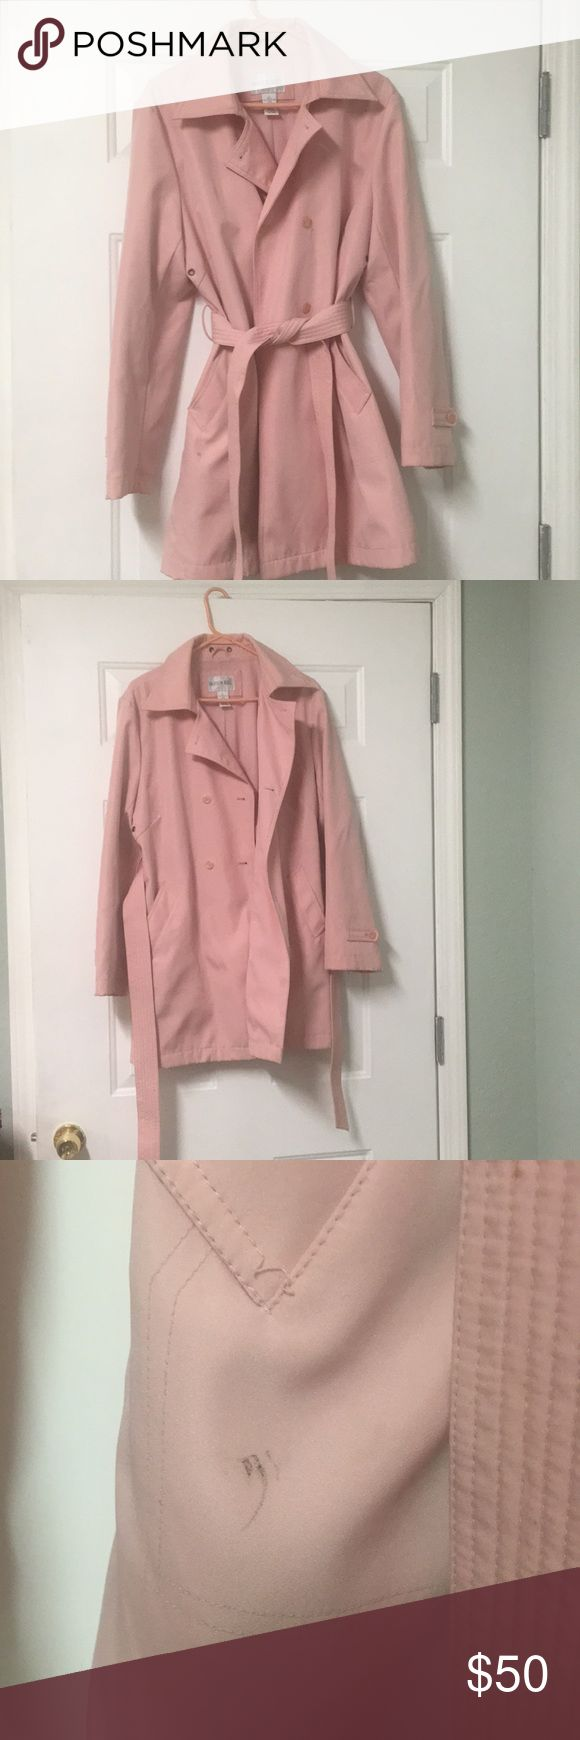 Fashion Bug Knee Length Rain Coat Women's Large This coat is waterproof and absolutely wonderful! If I weren't moving out of the country I wouldn't be parting with it! But it needs a good home! A couple stains (shown in pictures) but I've never tried to wash it honestly and it is machine washable. Open to offers. Let me know if you'd like to see more pictures! Fashion Bug Jackets & Coats Trench Coats